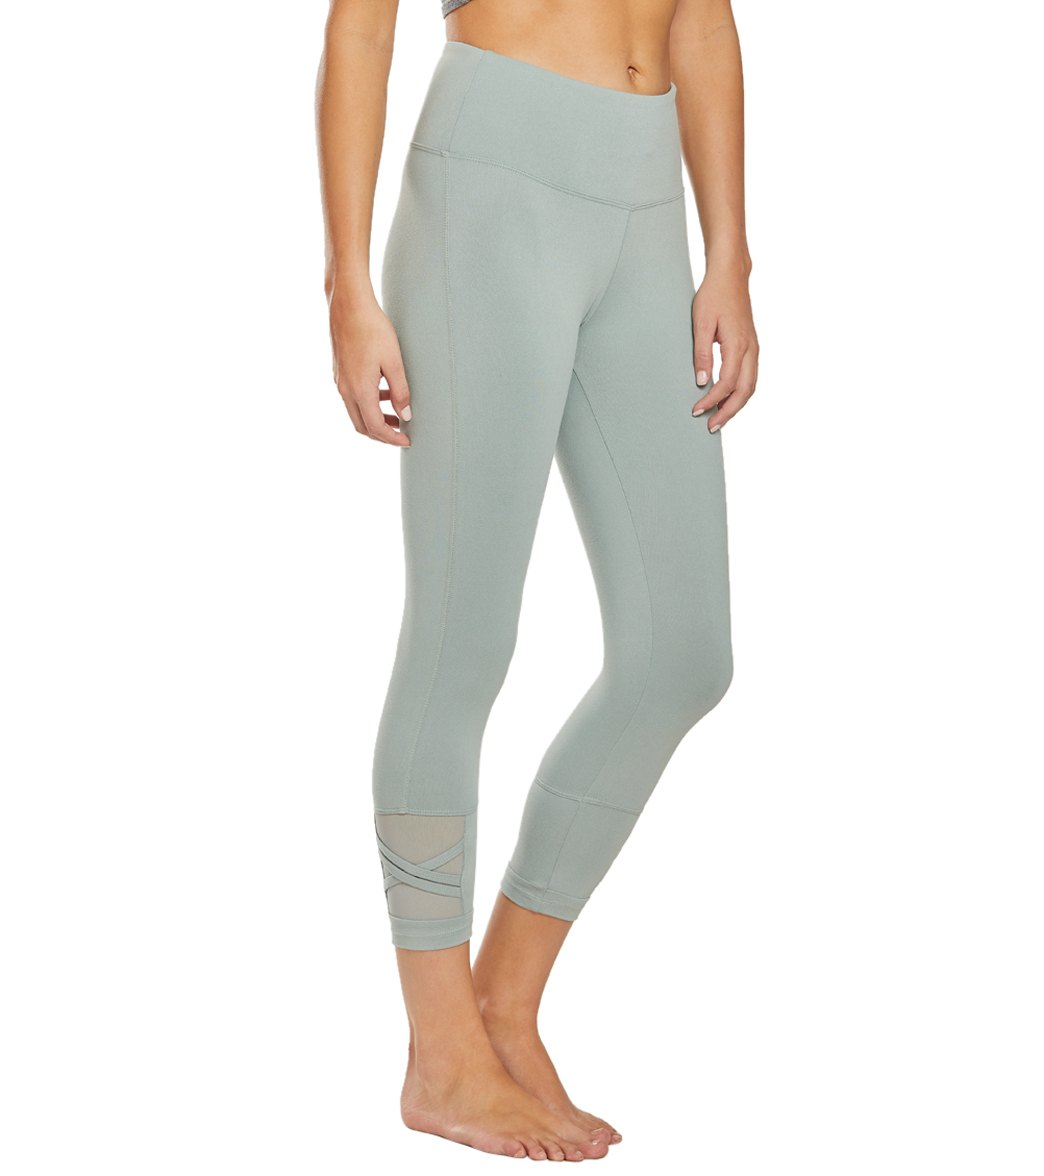 Balance Collection Ellie Yoga Capri Pants - Slate Grey Cotton